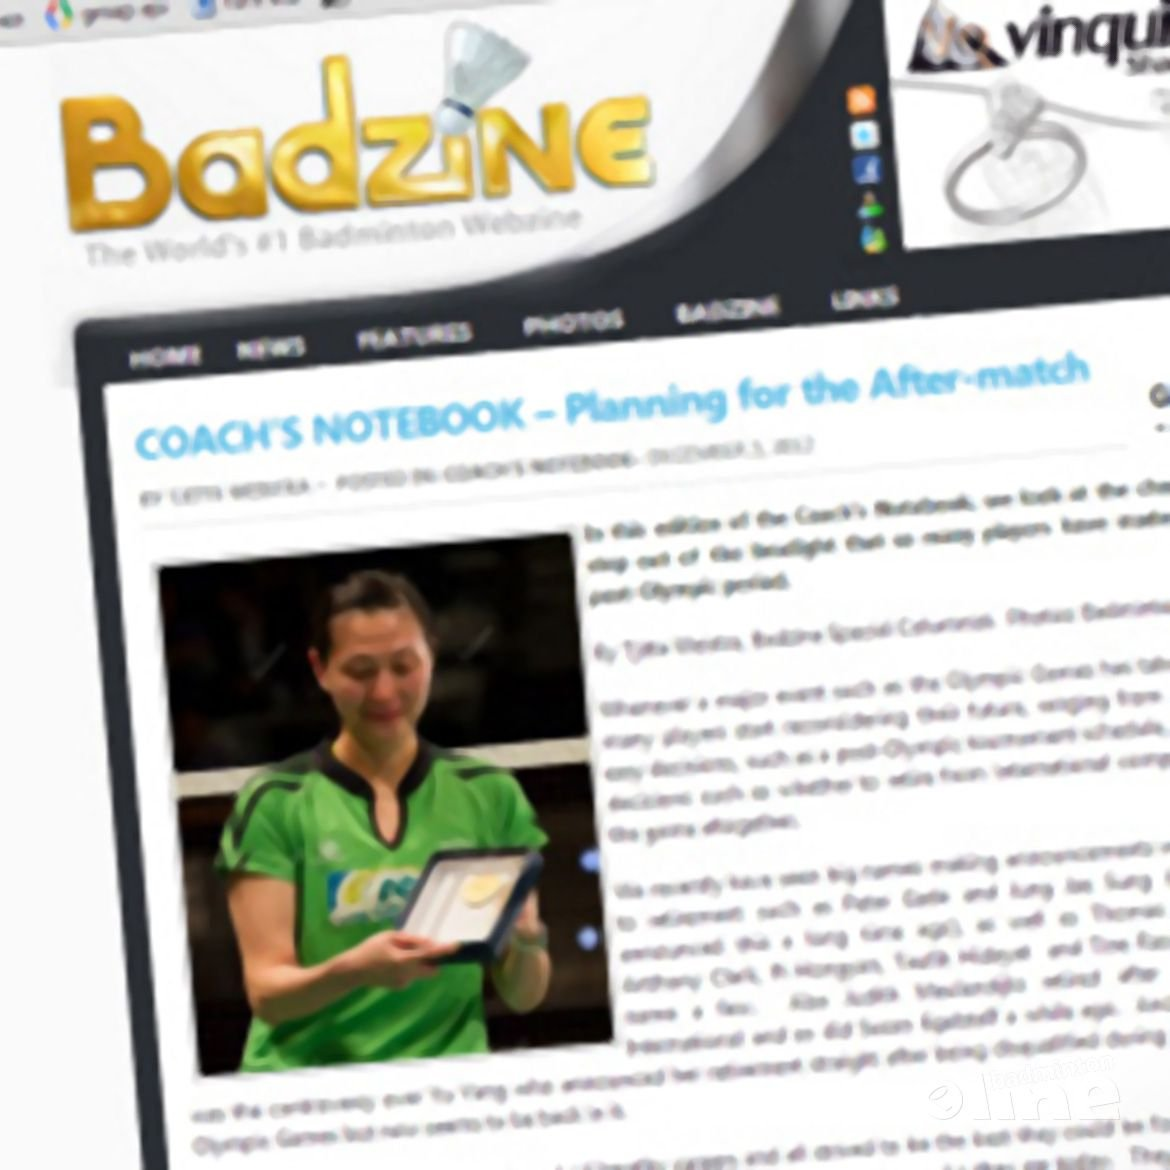 Tjitte Weistra: 'Planning for the After-match'